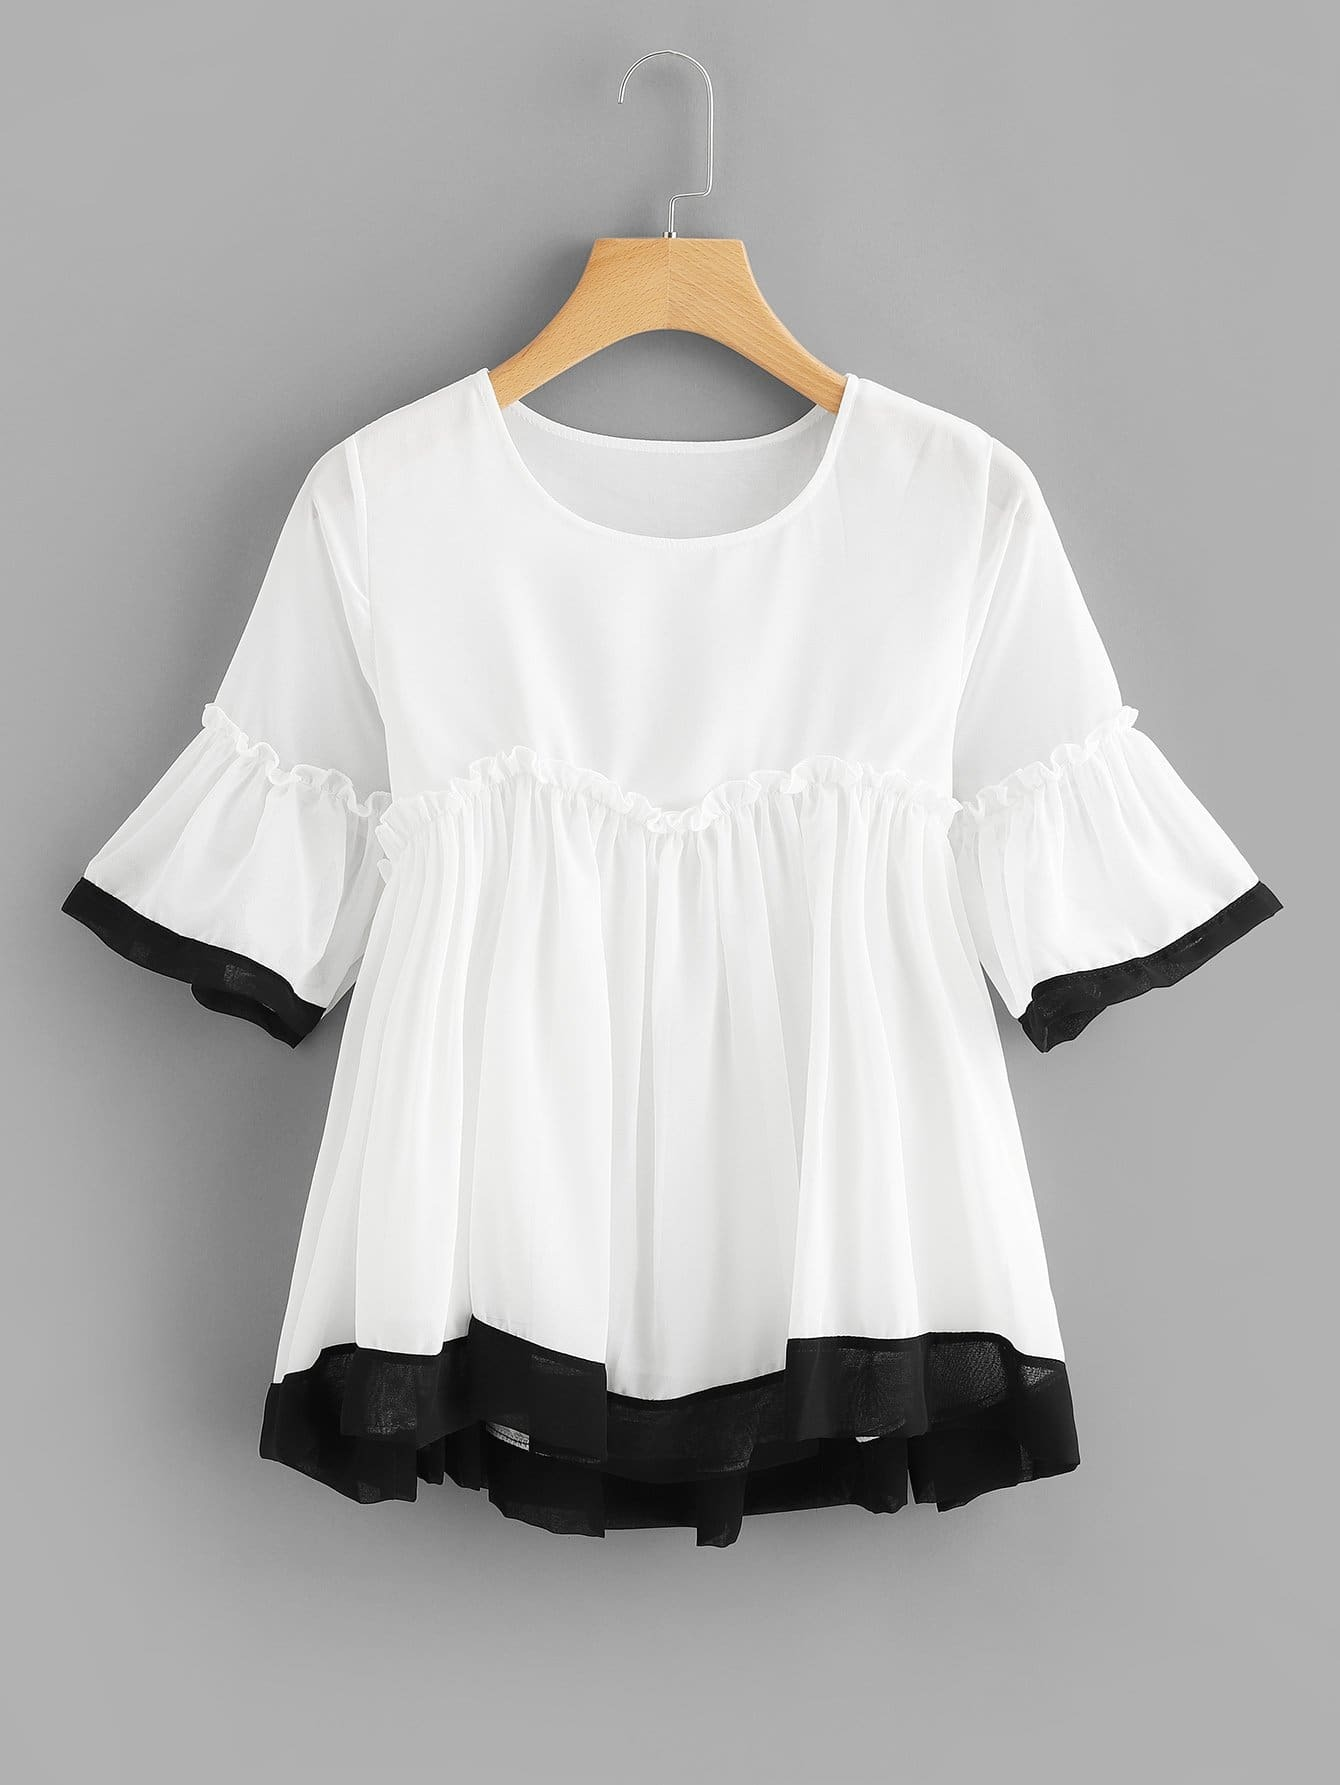 Ruffle Hem Chiffon Blouse stylish slim dress hem blouse